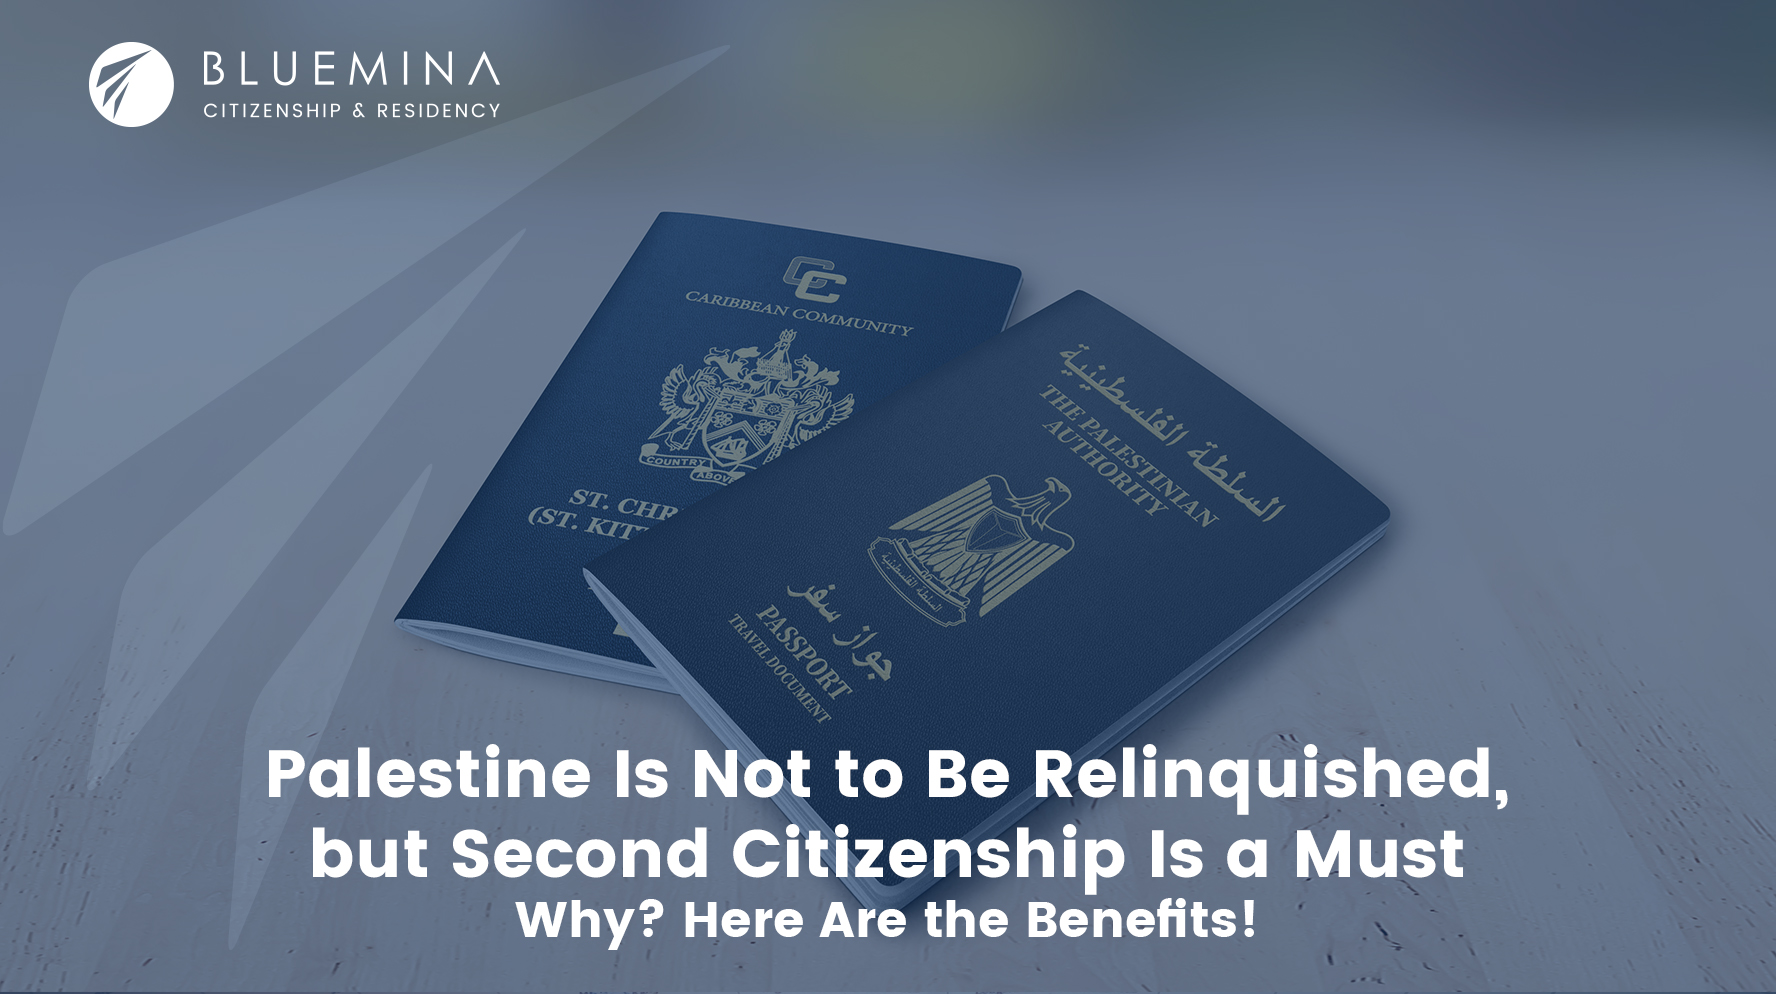 Palestine Is Not to Be Relinquished, but Second Citizenship Is a Must